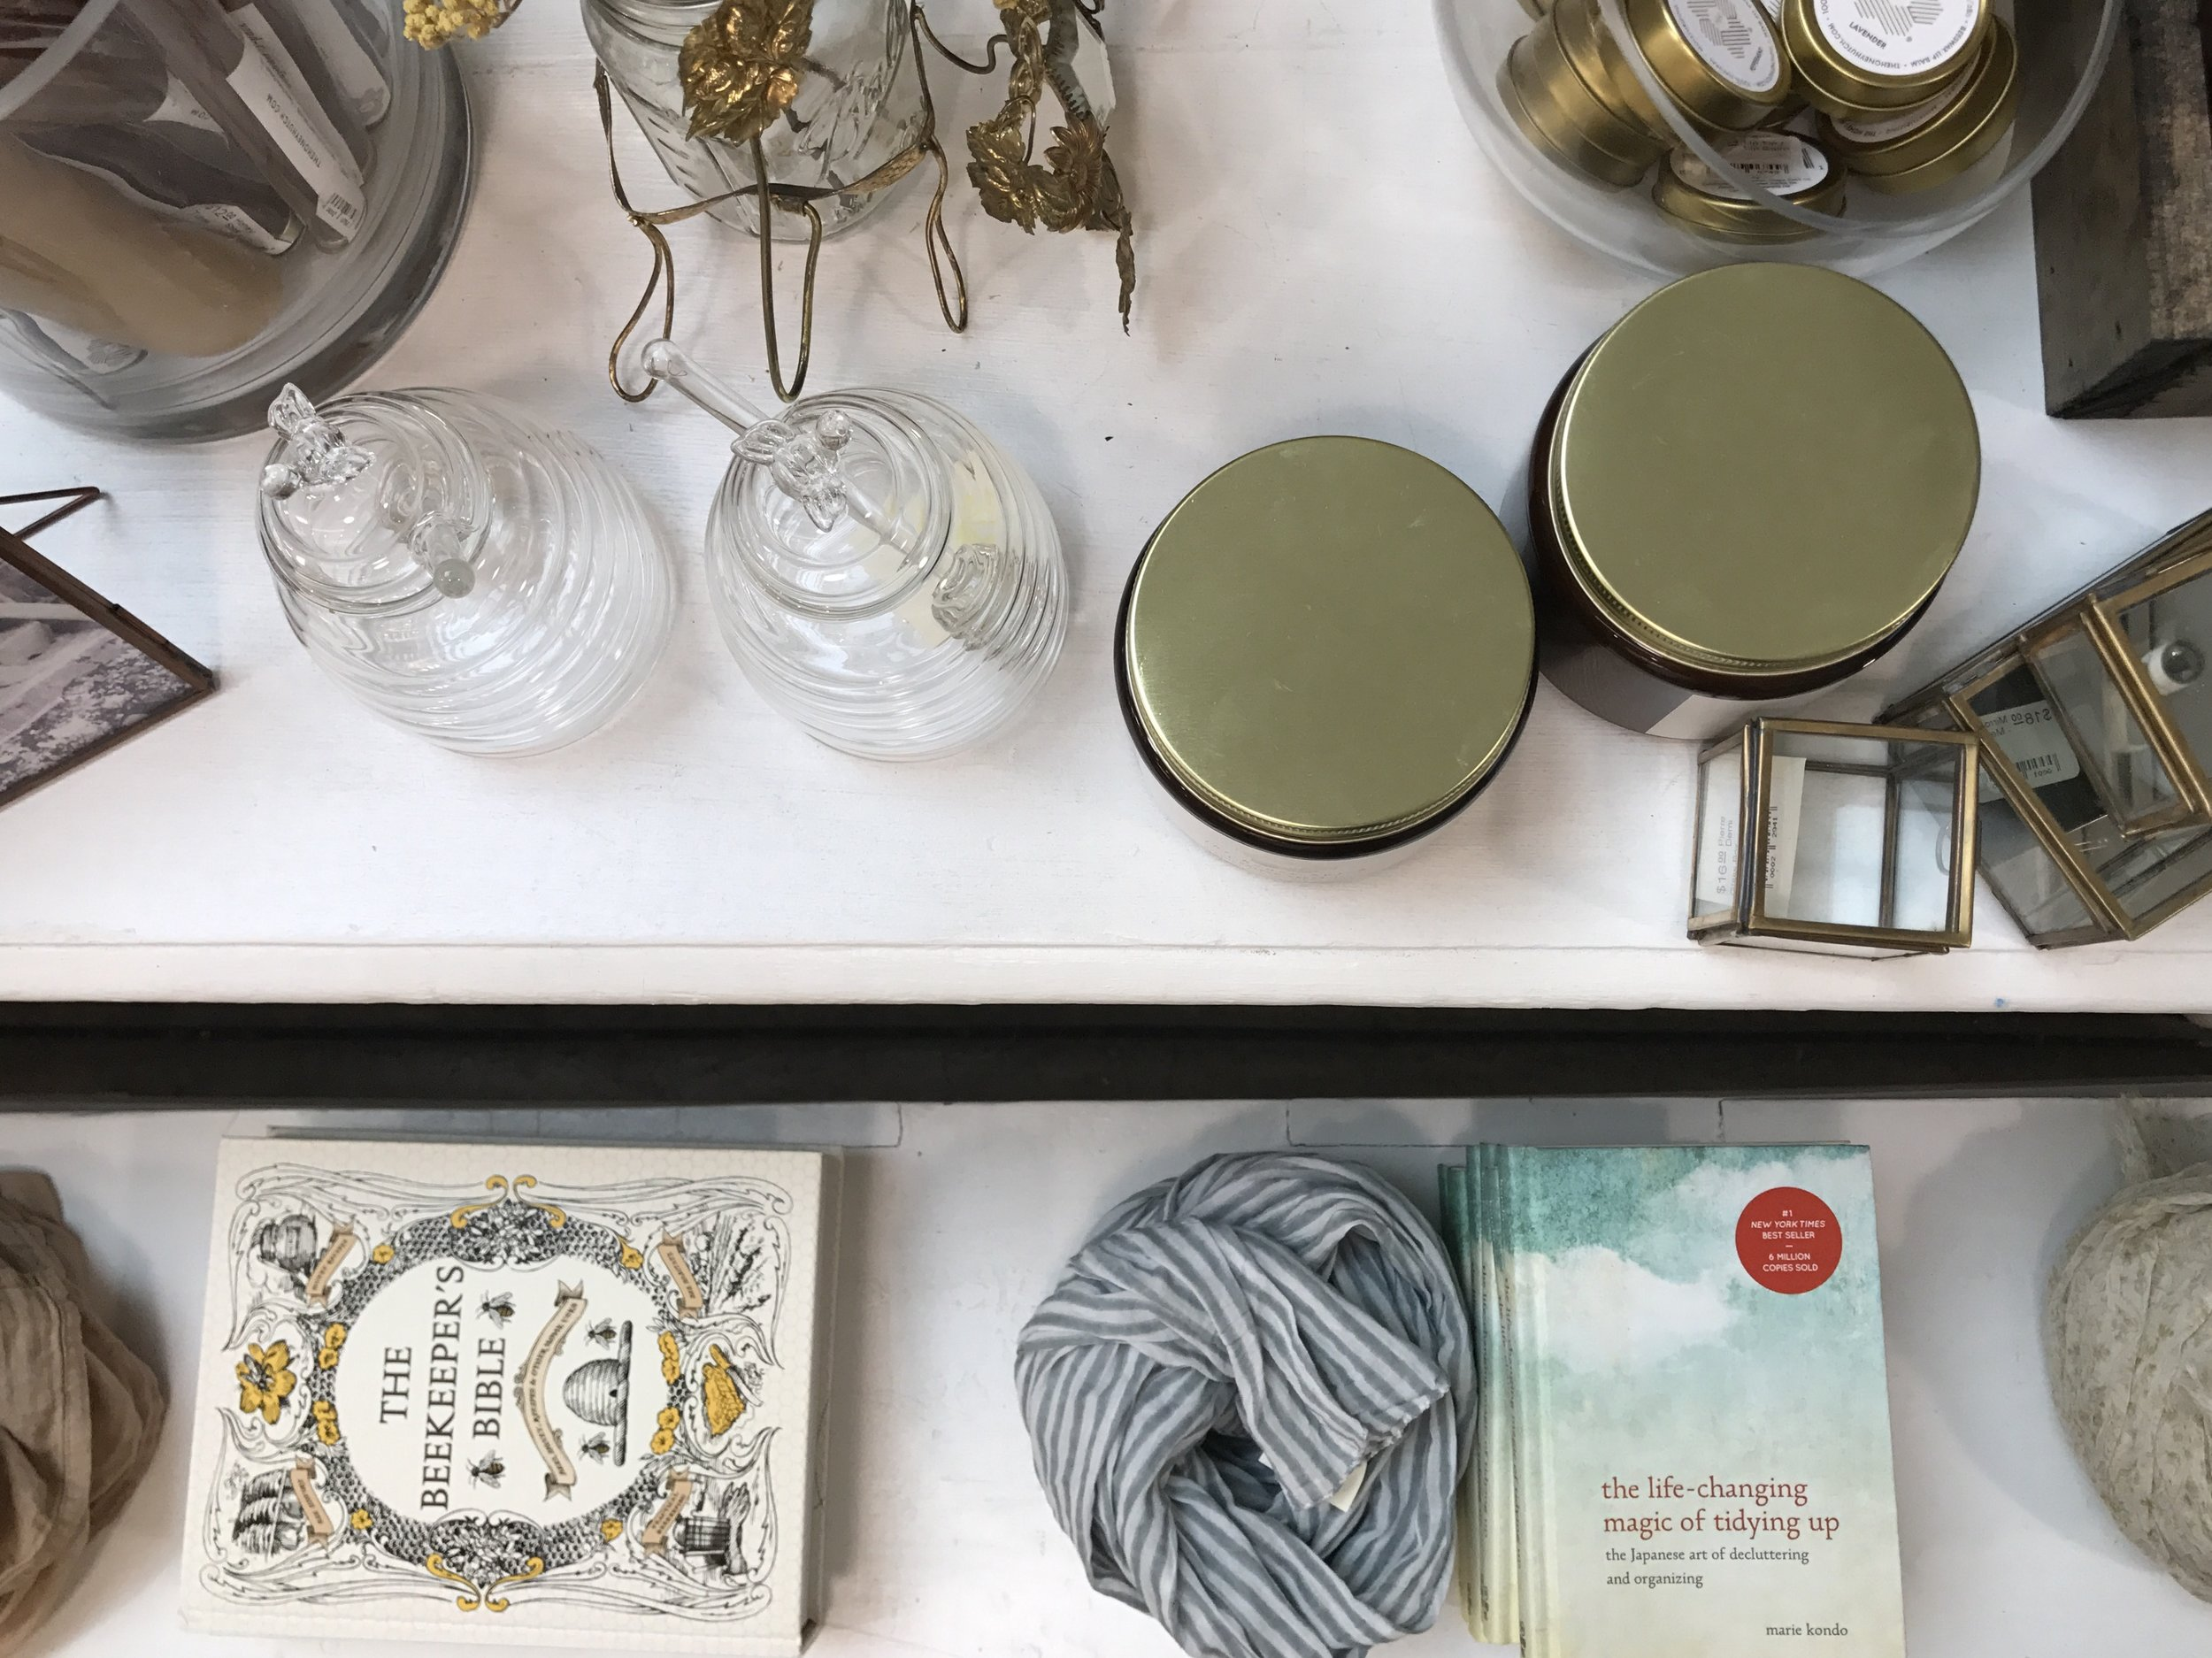 My favorite author -  Marie Kondo  - seem's to follow me everywhere! Snapped this picture at a store in Mill Valley that we visited over the weekend!